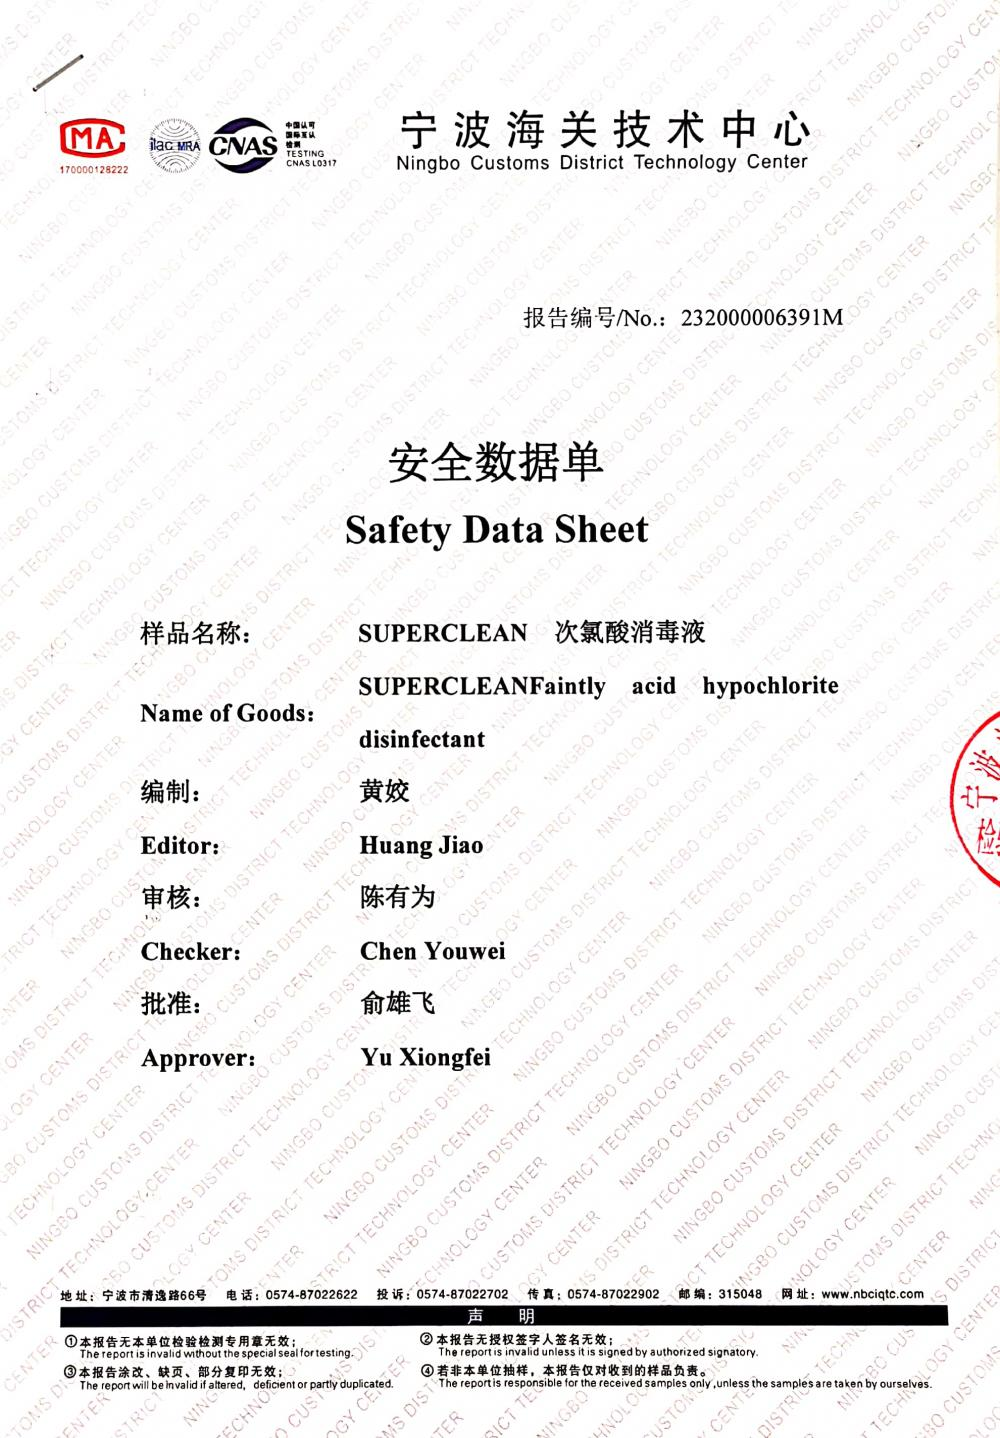 Safety Data Sheet of SuperClean Data Sheet